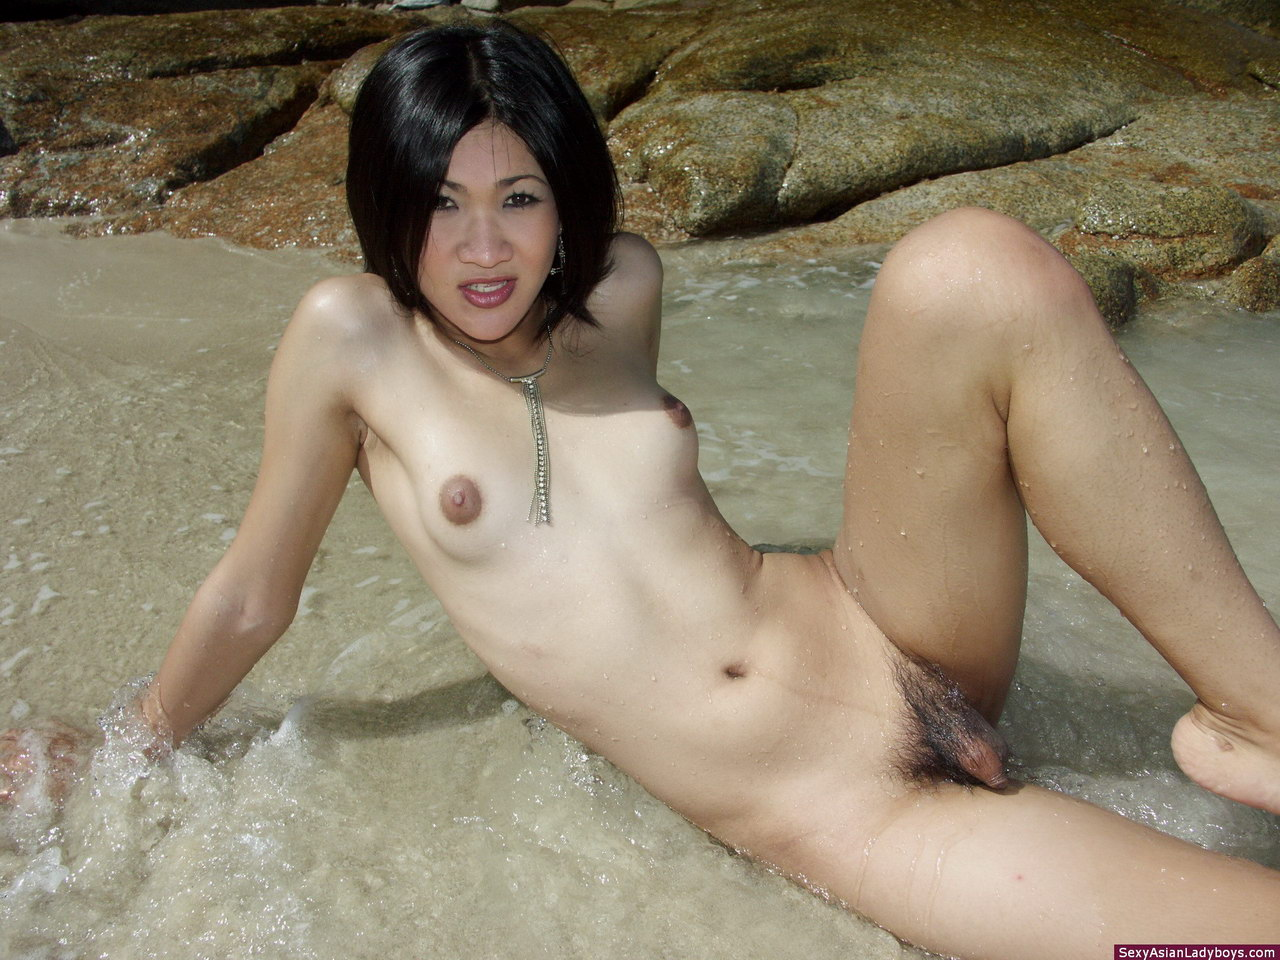 Hot Shemale In Beach